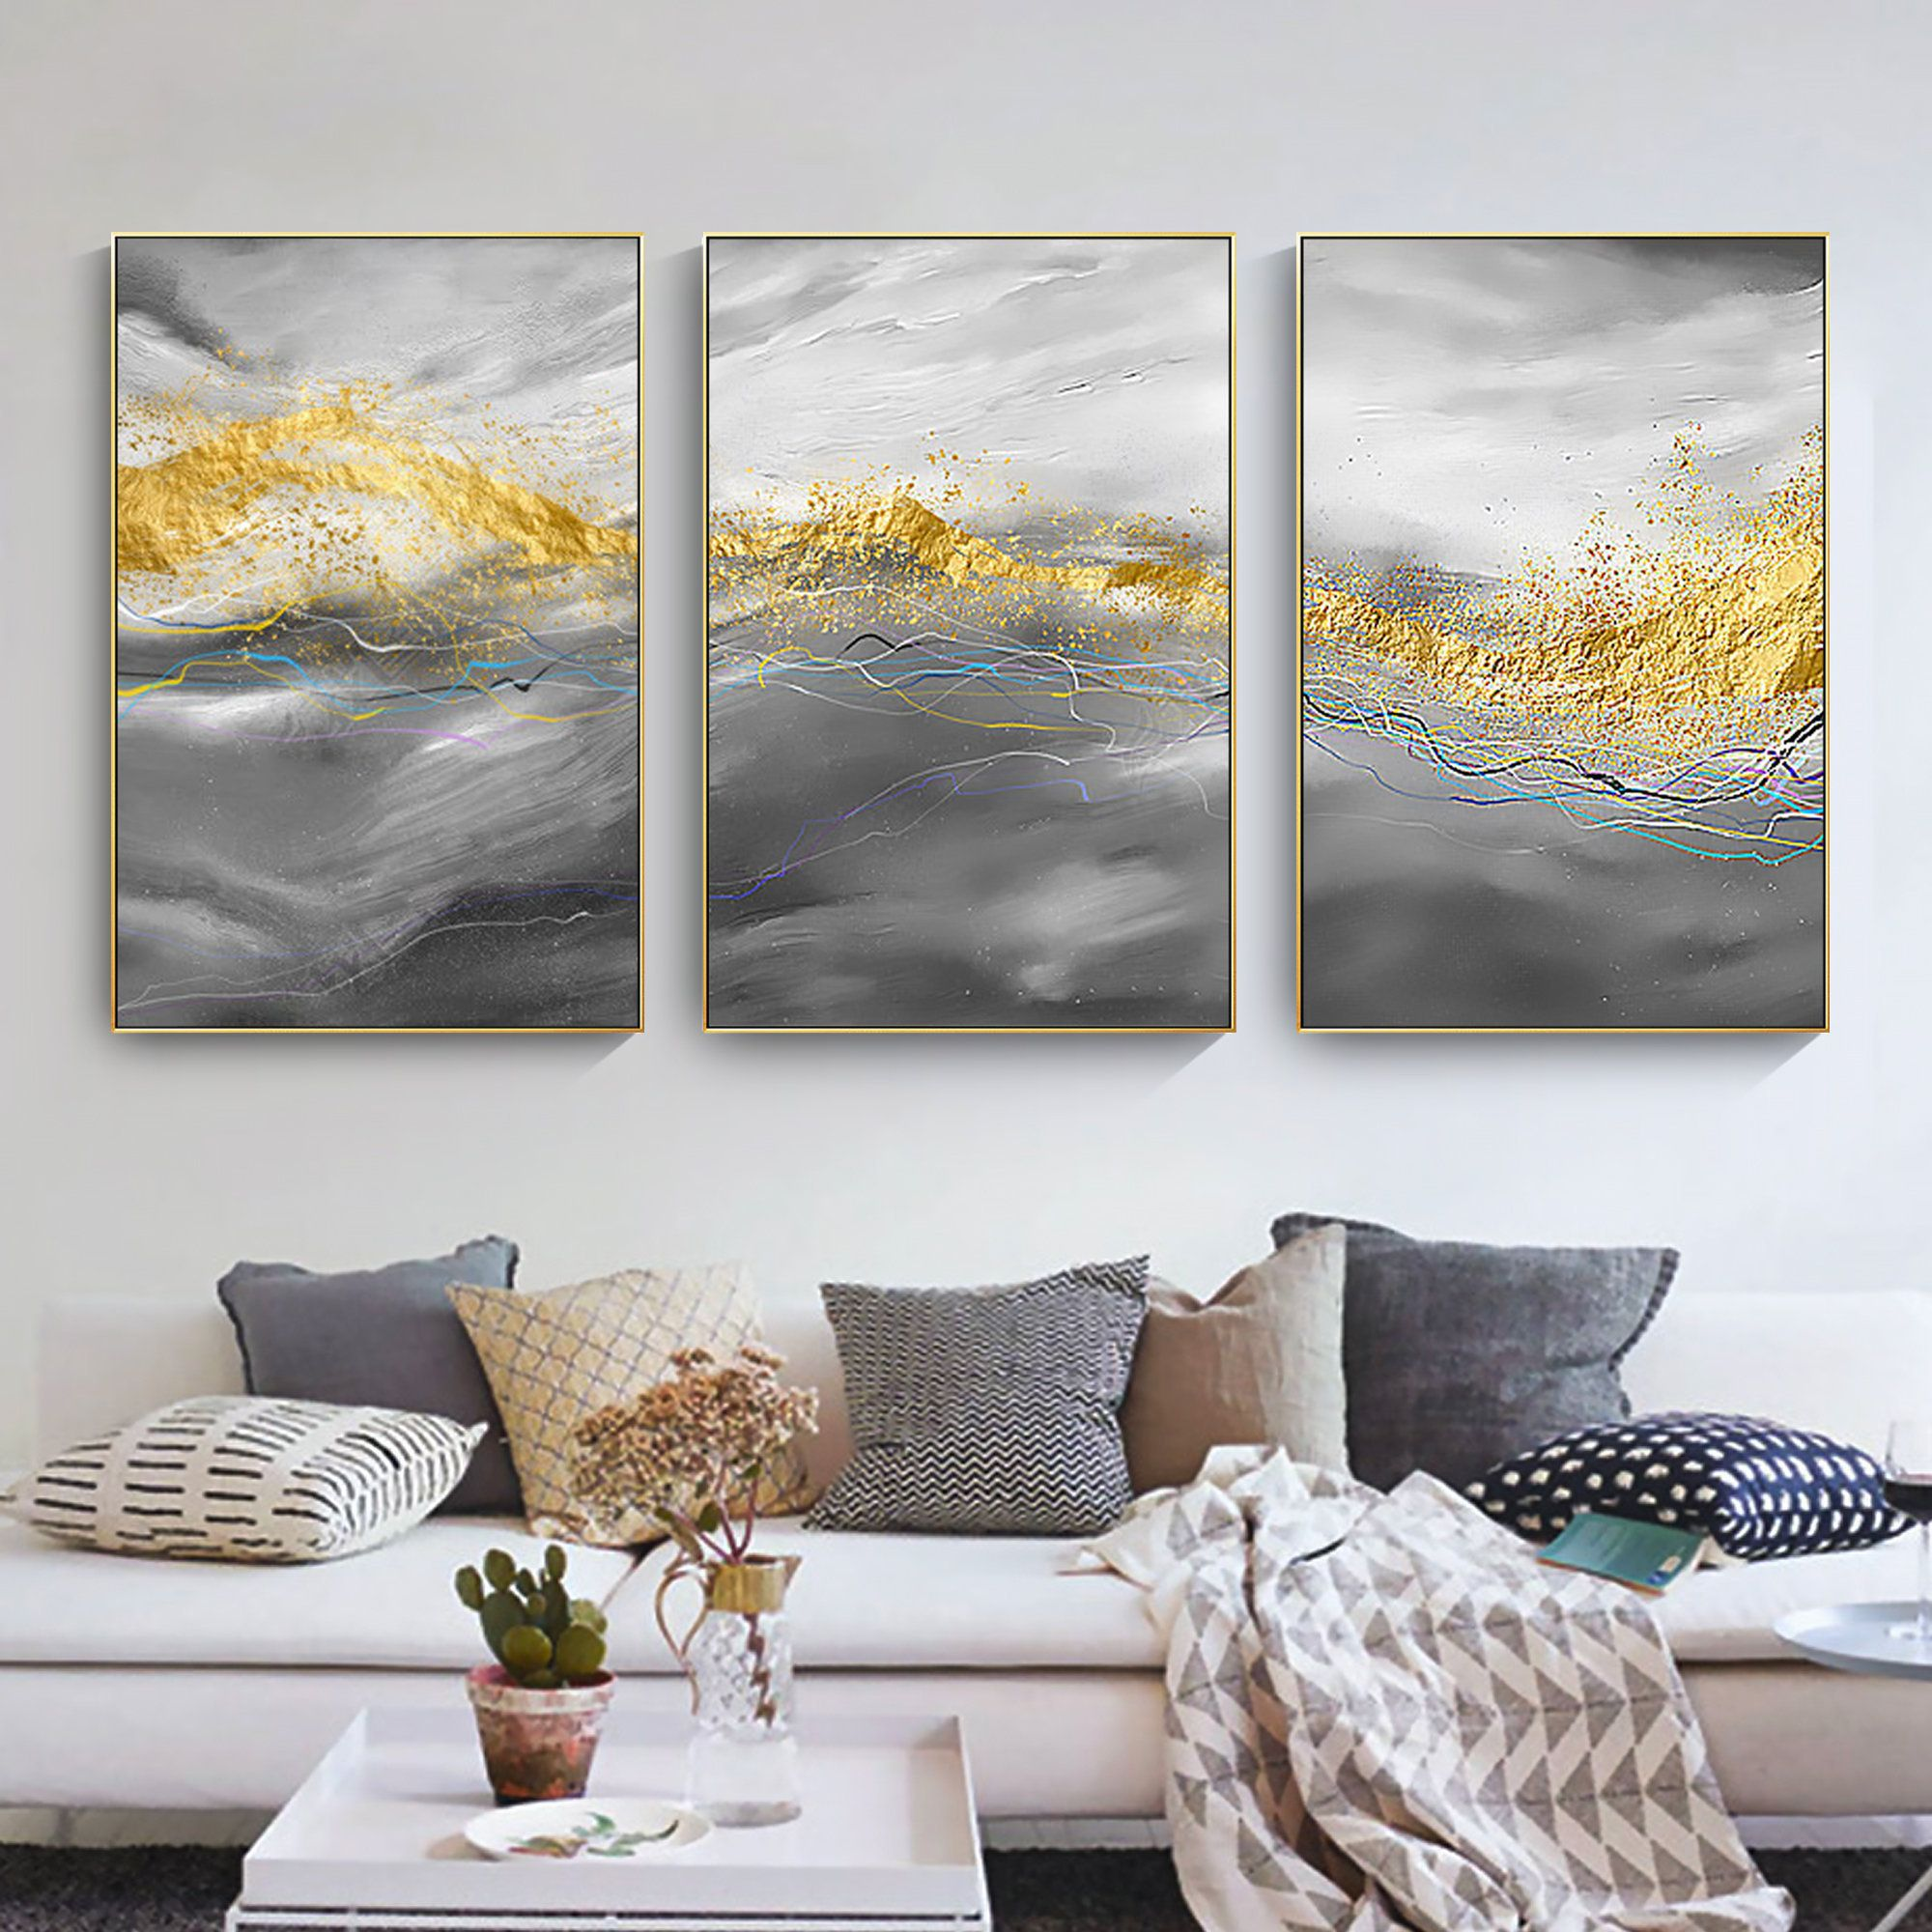 Set Of 3 Frame Wall Art Abstract Gold Grey Blue Purple Print Etsy In 2021 Framed Wall Art Sets Frames On Wall Bedroom Wall Art Canvas Modern art frames for living room